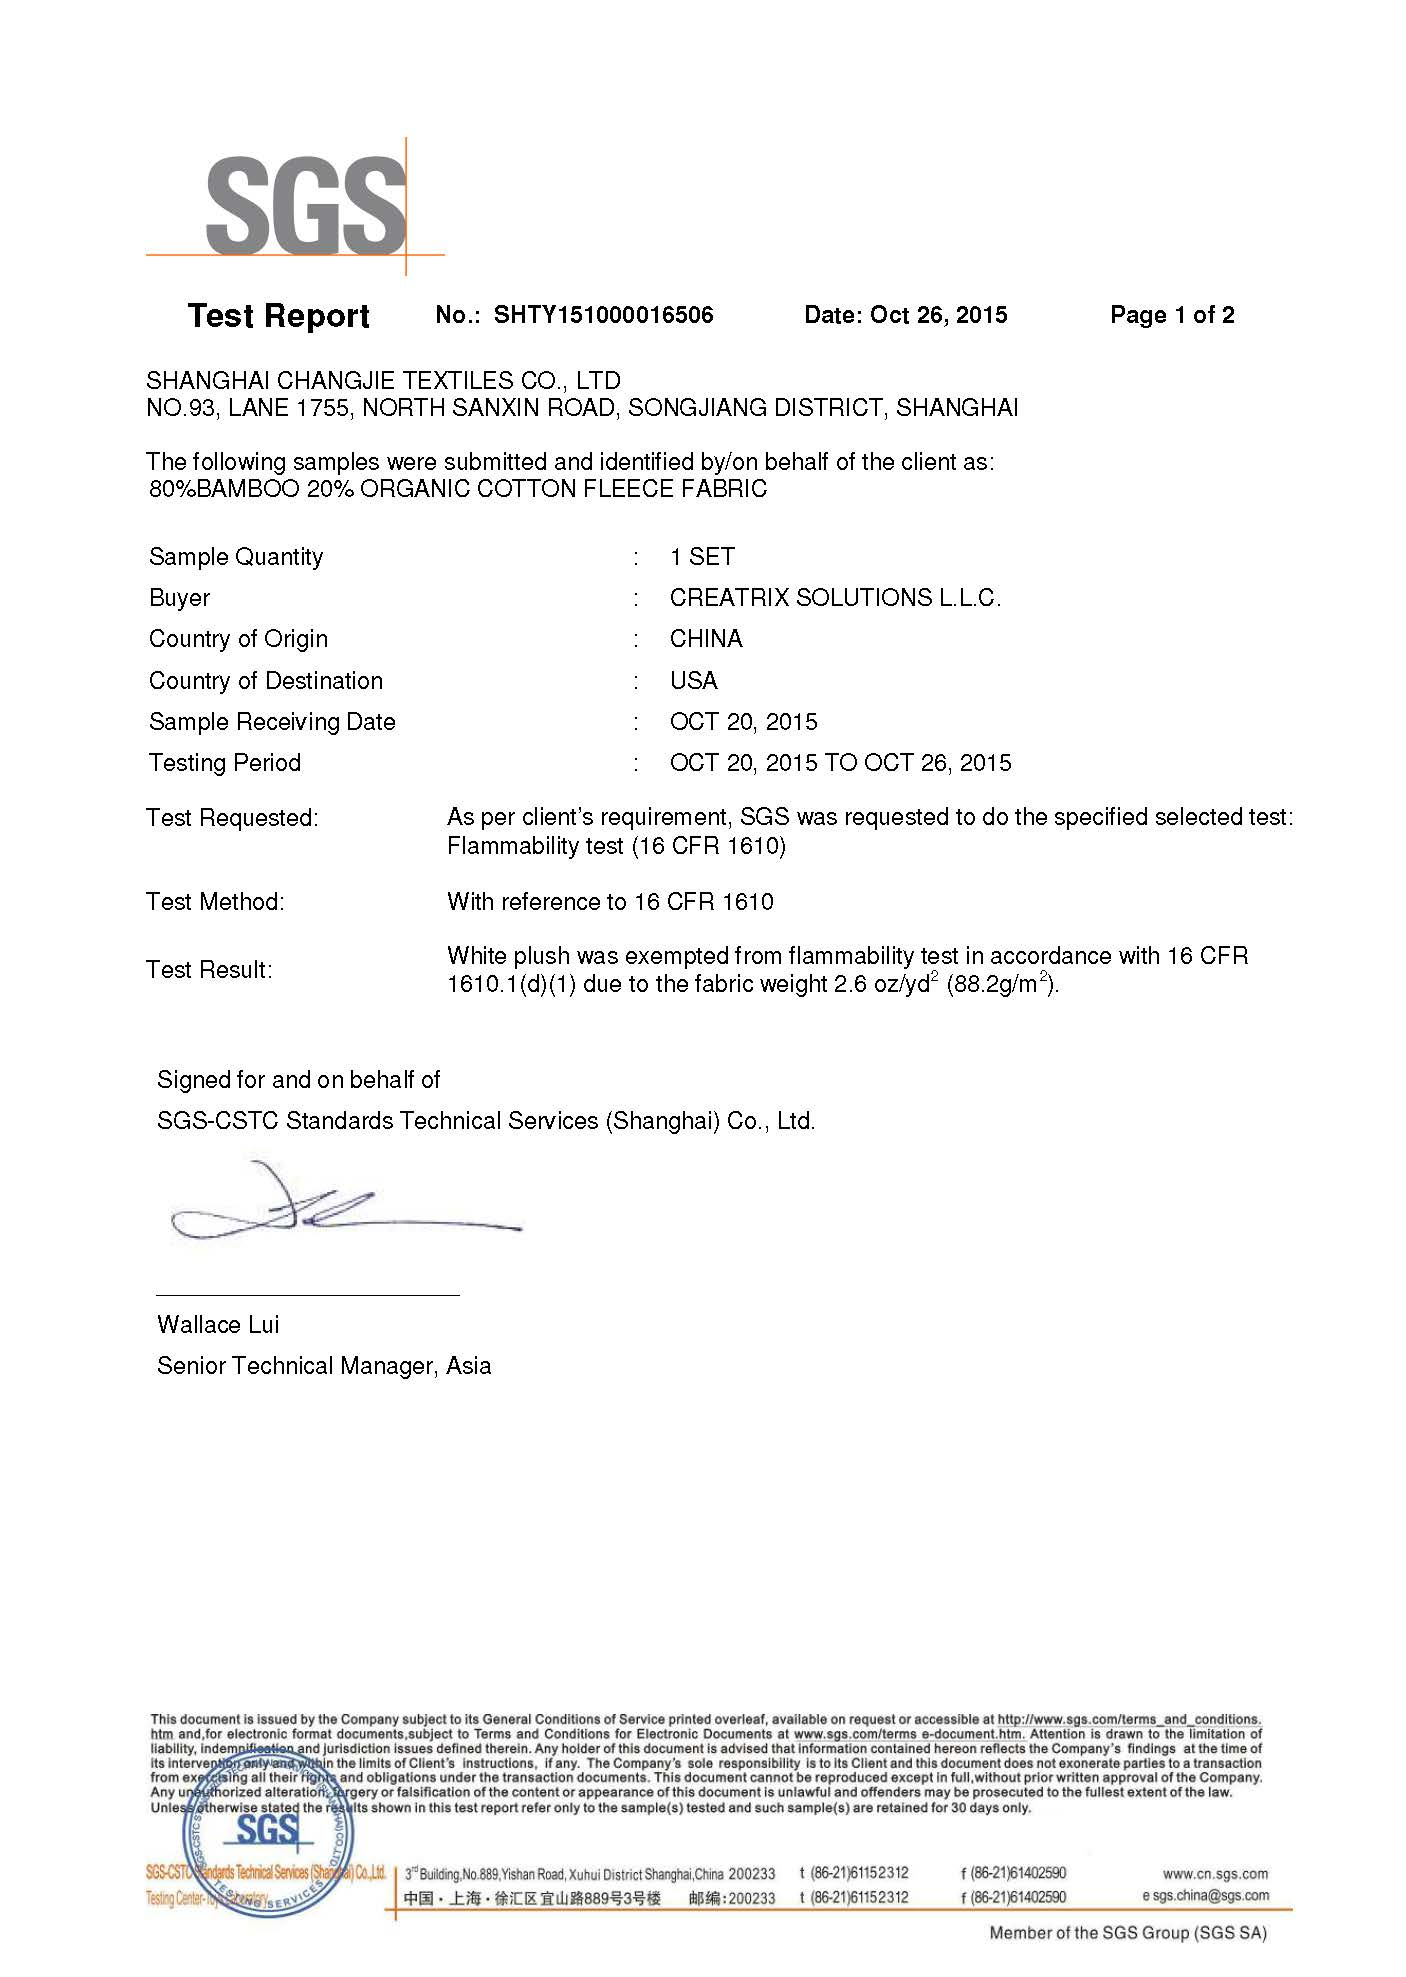 Bamboo Cotton Fleece Flammability Test Report Page 1